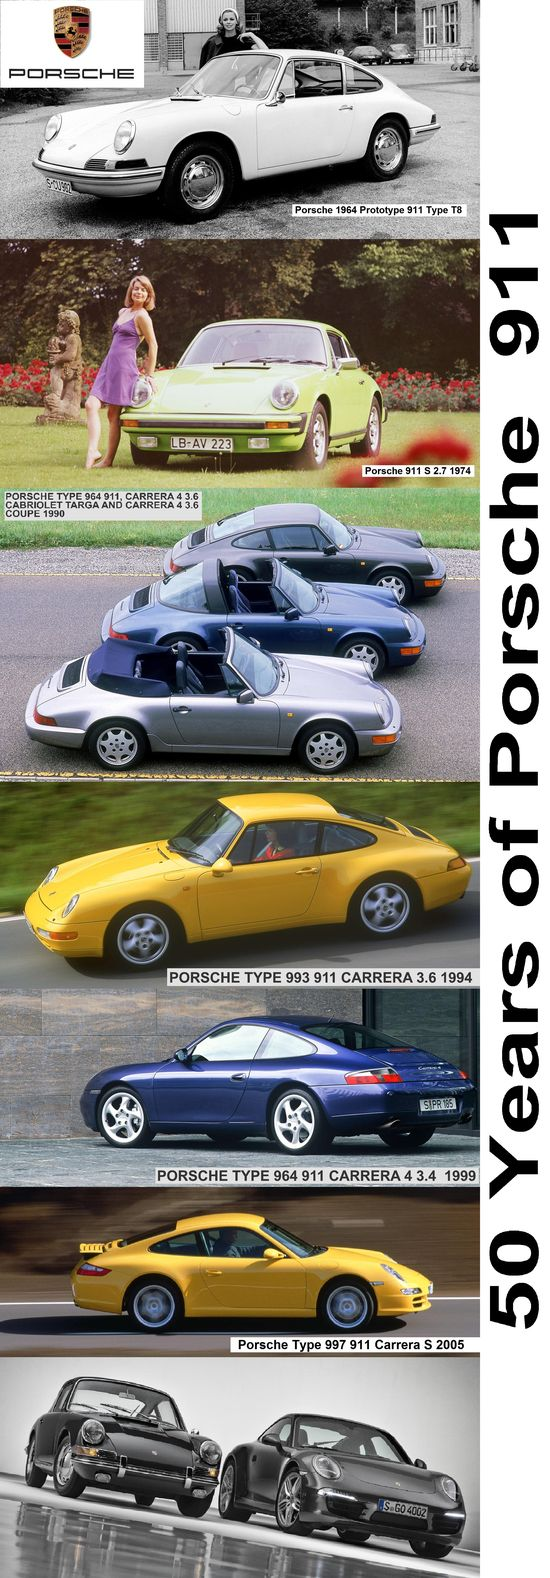 Porsche 911 Evolution, one of the best sports cars ever made.